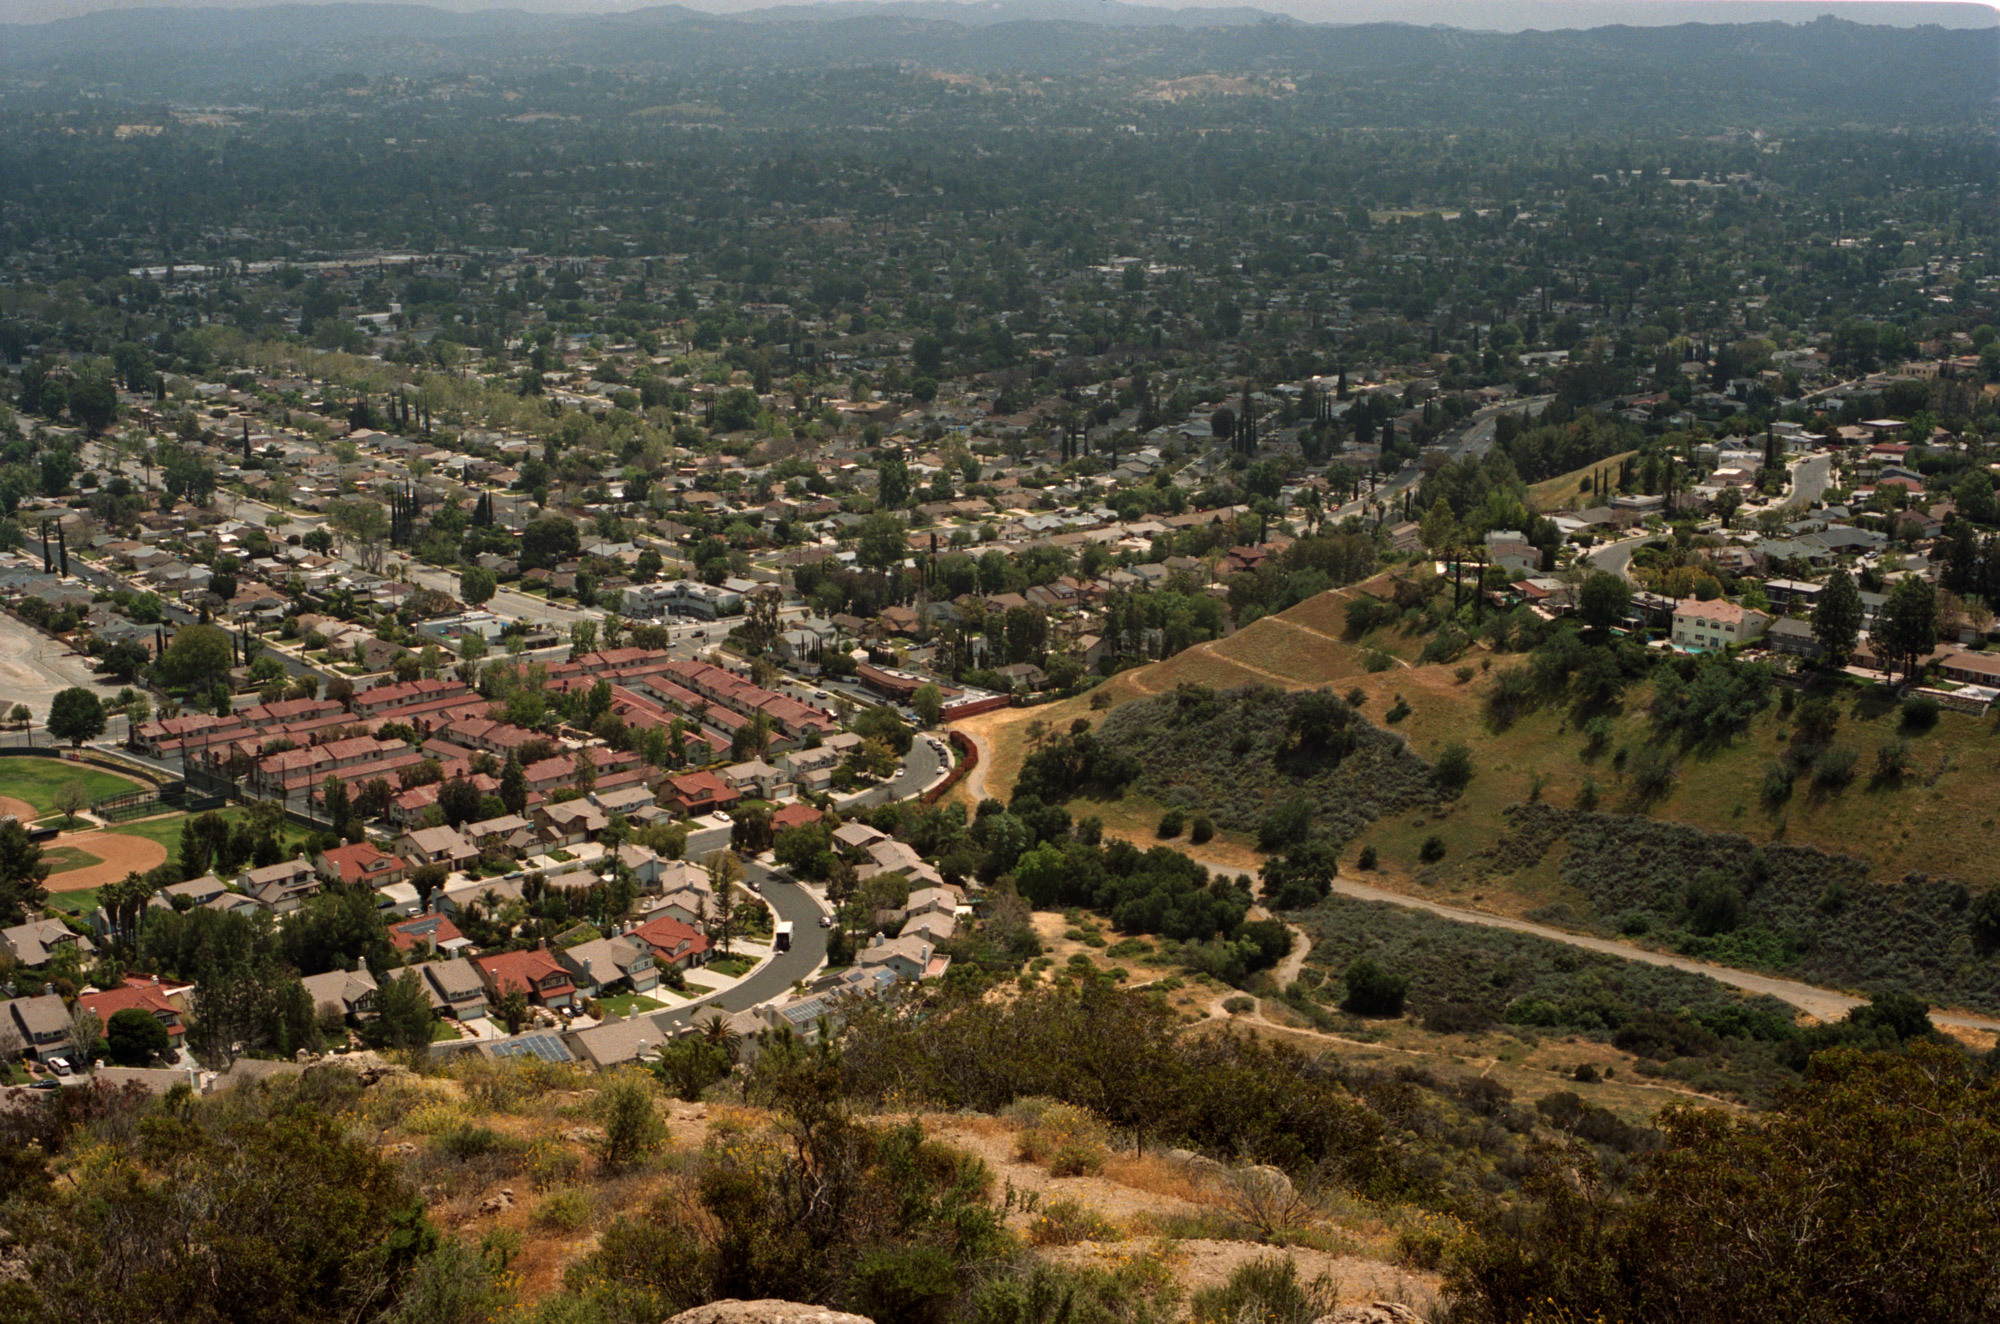 West Hills, Los Angeles, OMG Your English, Photography By Ioannis Koussertari